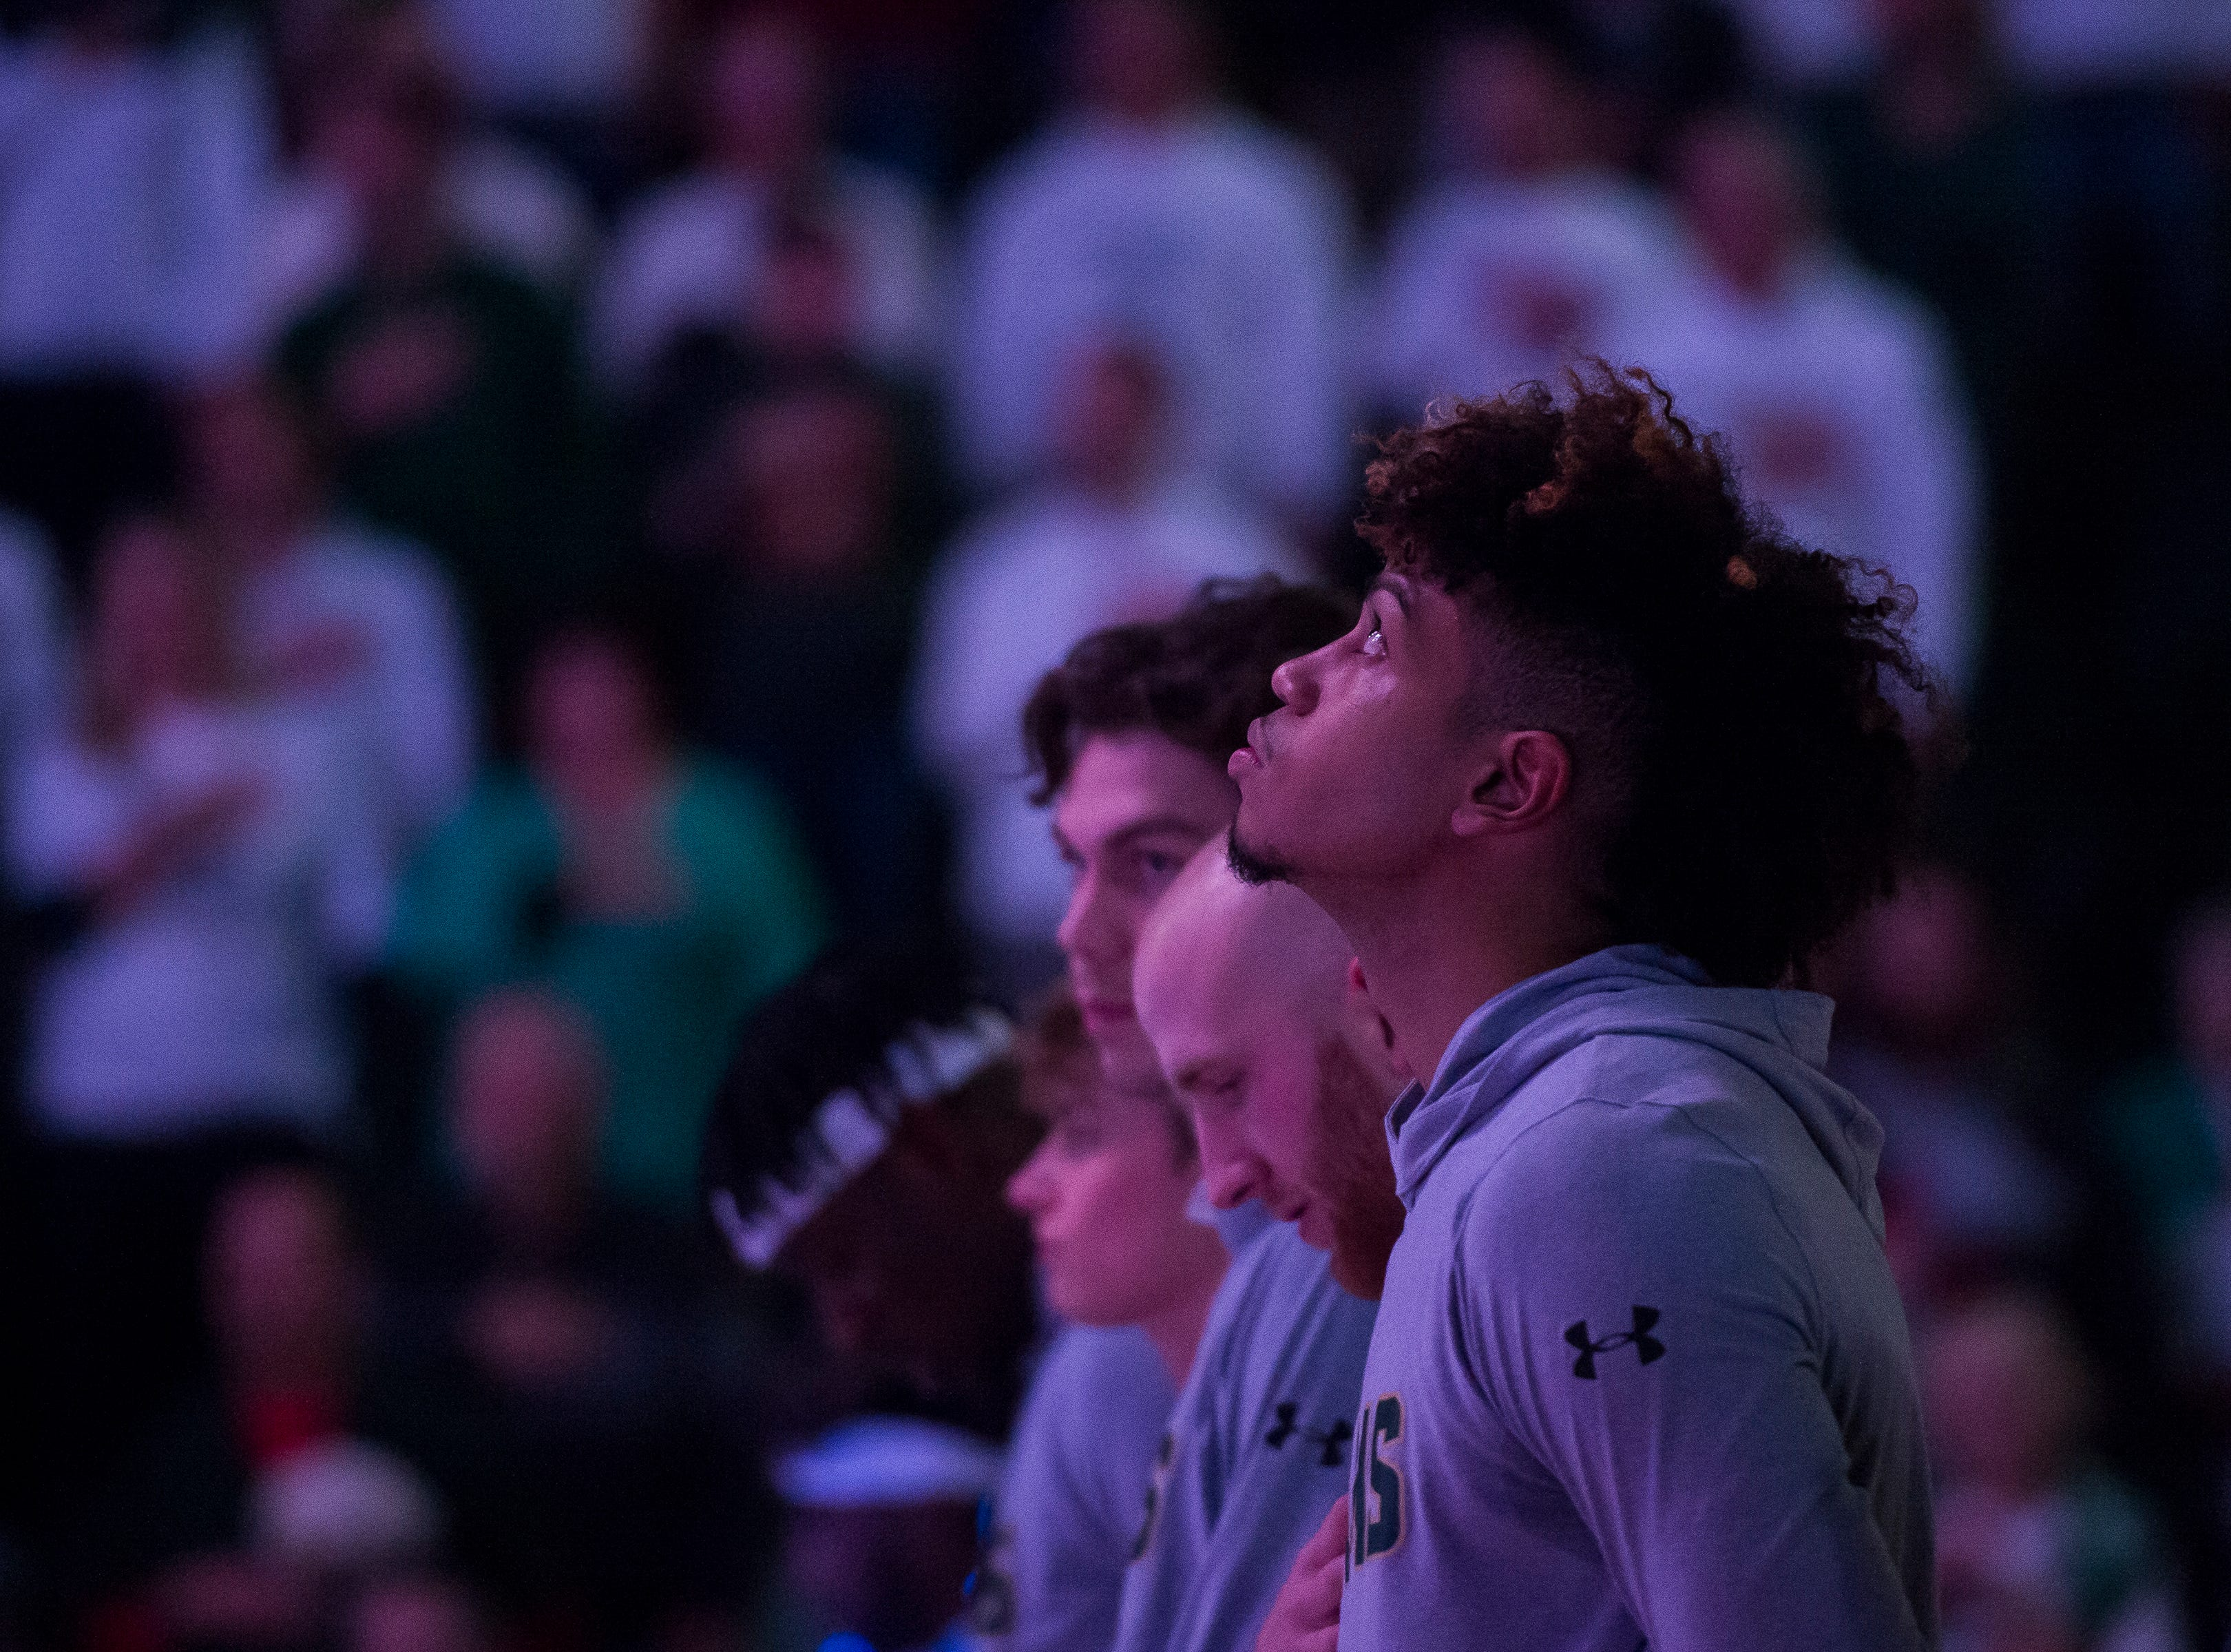 Colorado State University junior guard Lorenzo Jenkins (13) looks up during the Start Spangled Banner before a game against Arkansas on Wednesday, Dec. 5, 2018, Moby Arena in Fort Collins, Colo.